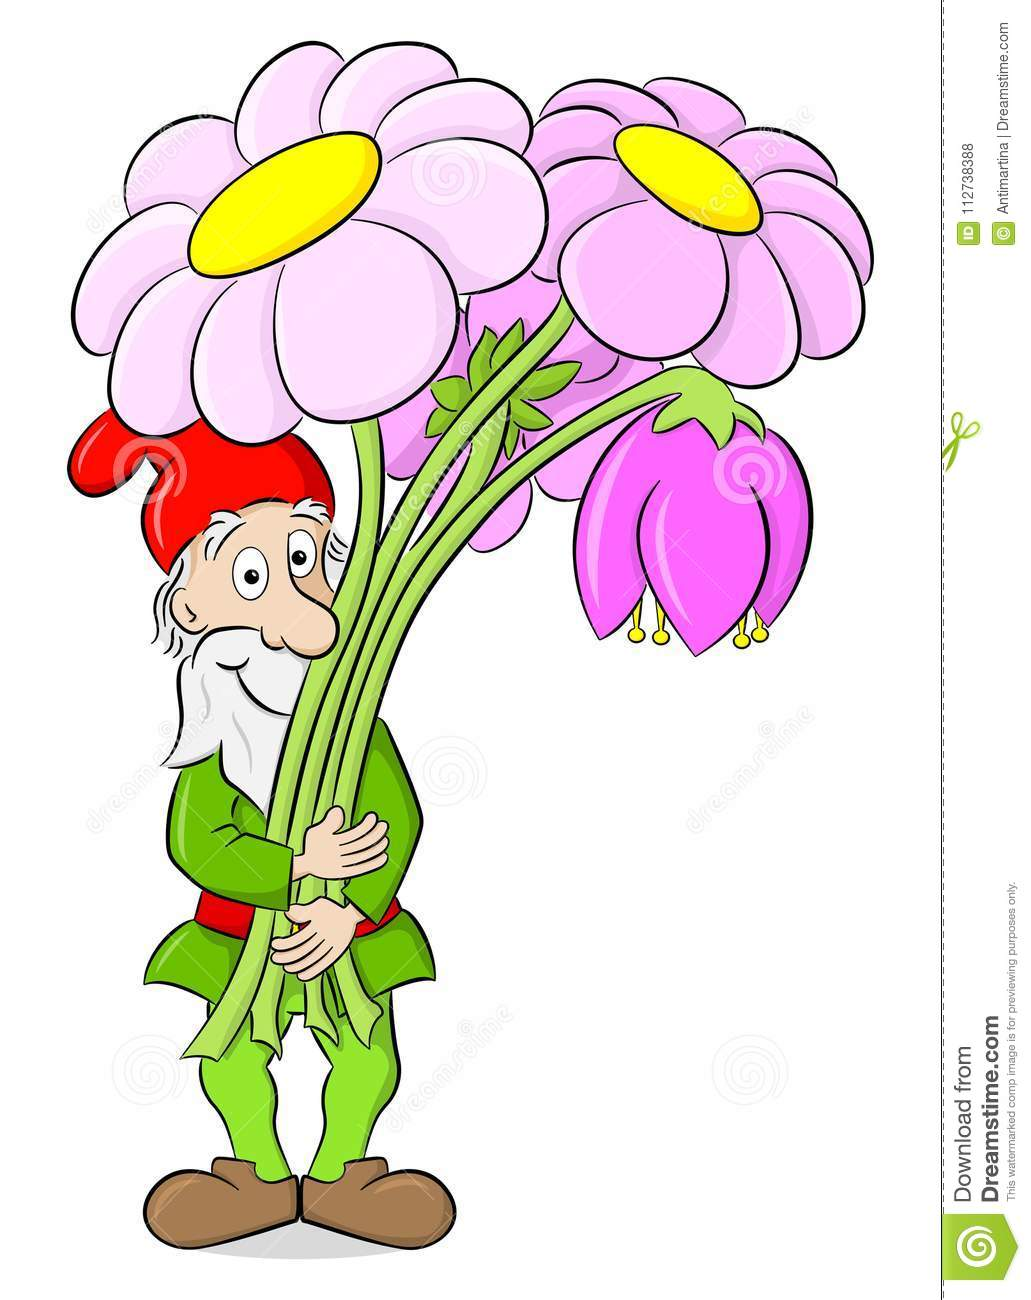 Cartoon garden gnome with a bouquet of flowers stock vector cartoon garden gnome with a bouquet of flowers izmirmasajfo Choice Image